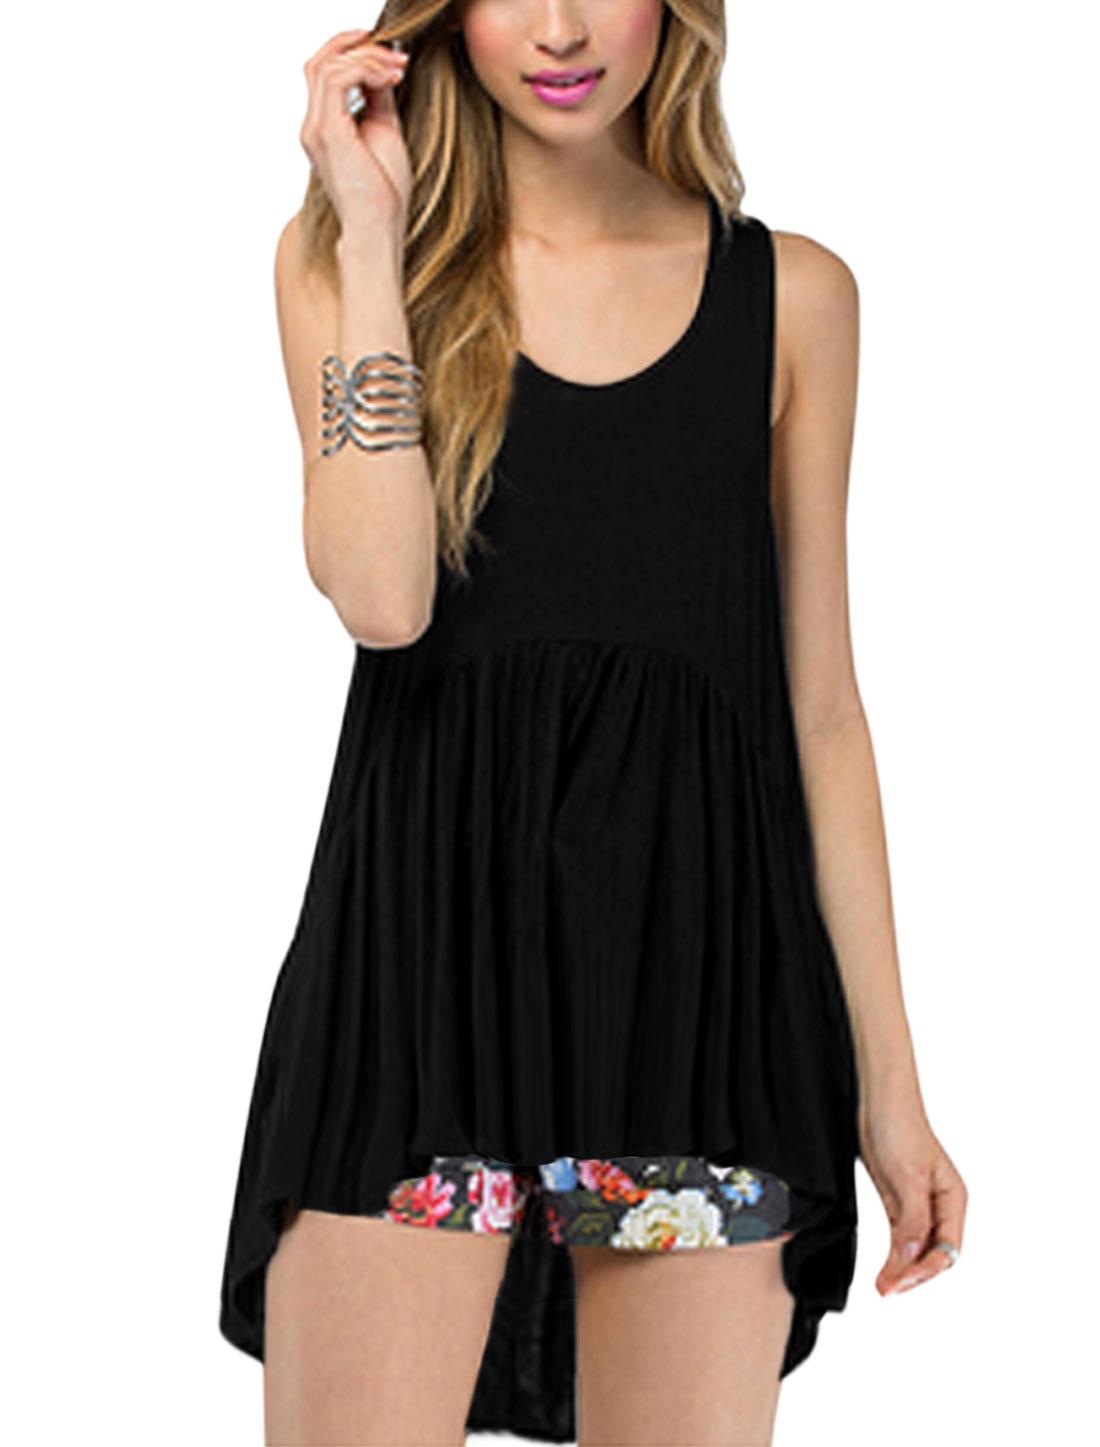 Women Scoop Neck Sleeveless Asymmetric Hem Casual Tops Black M